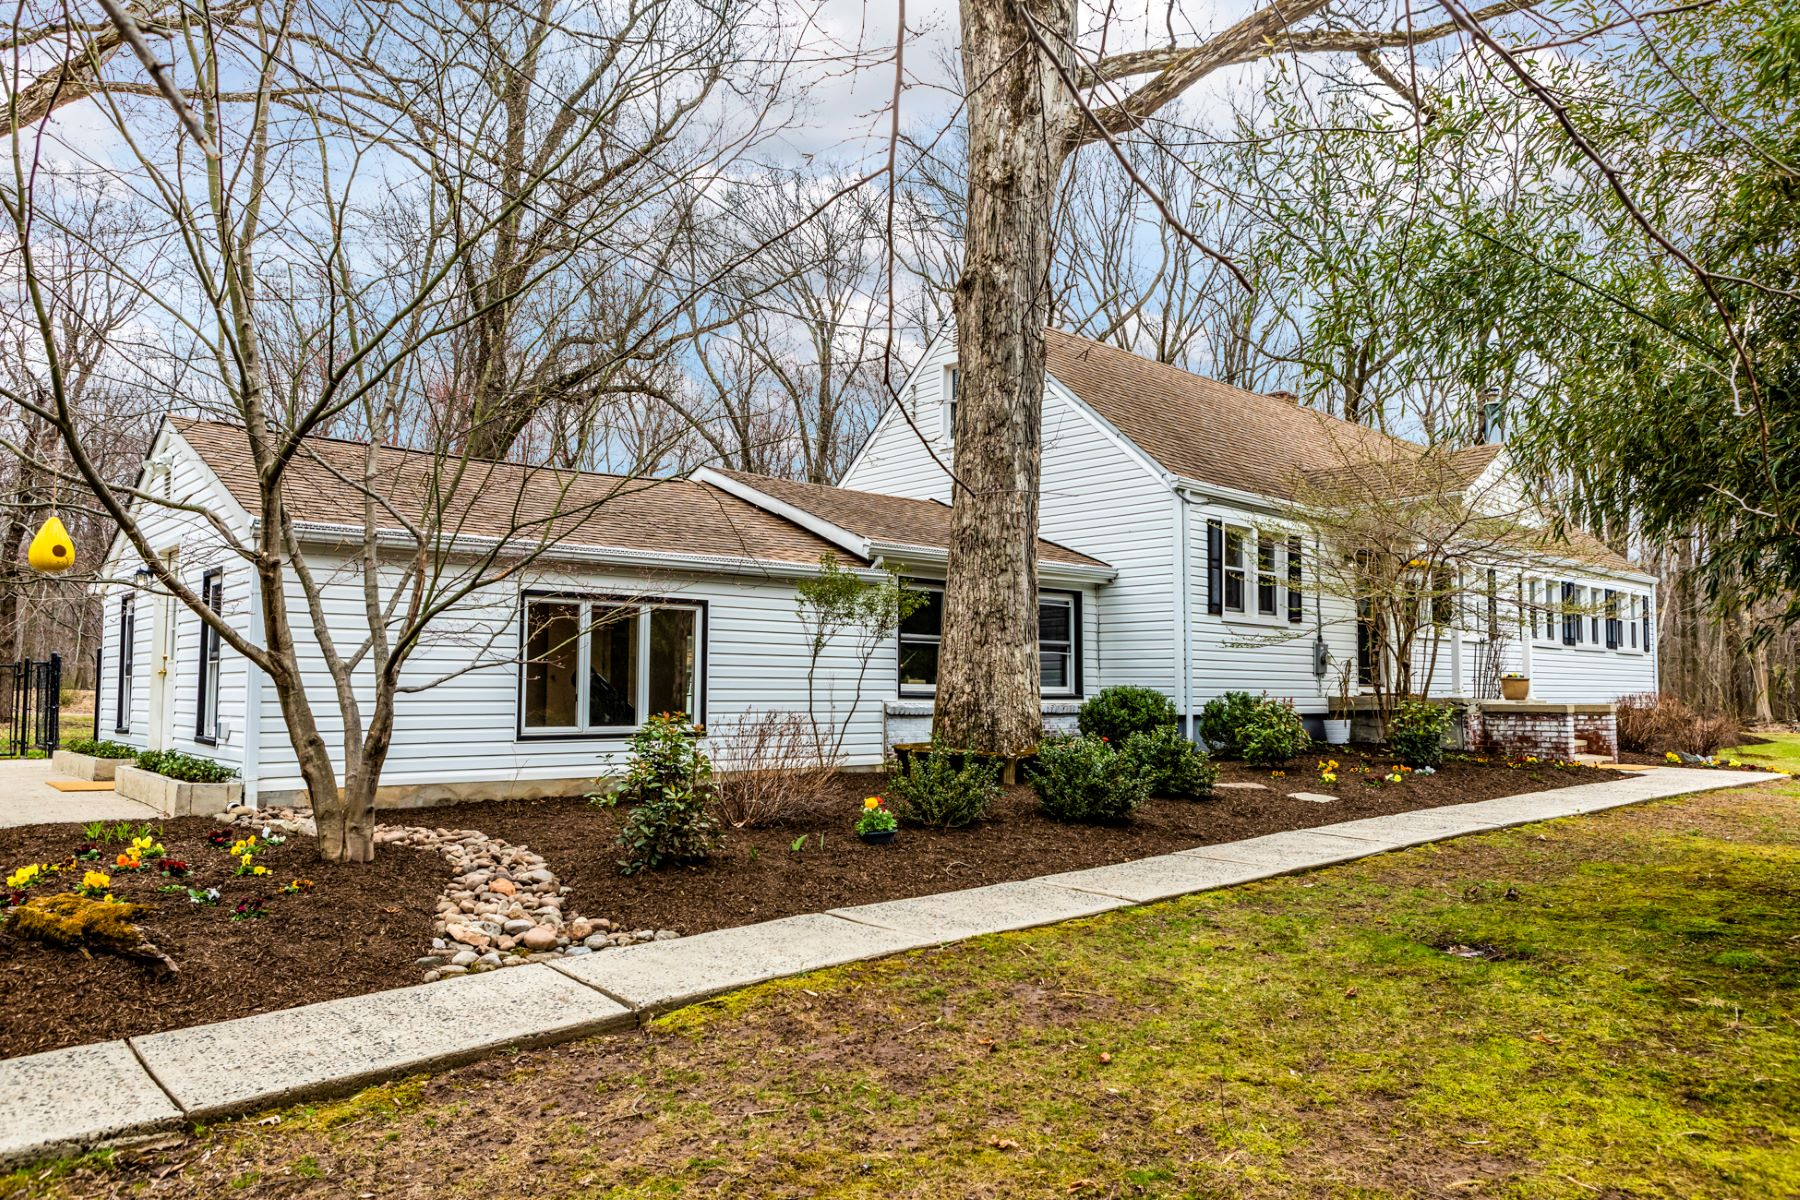 Property for Sale at Idyllic Natural Setting with a Modern Feel 325 Zion Road, Hillsborough, New Jersey 08844 United States